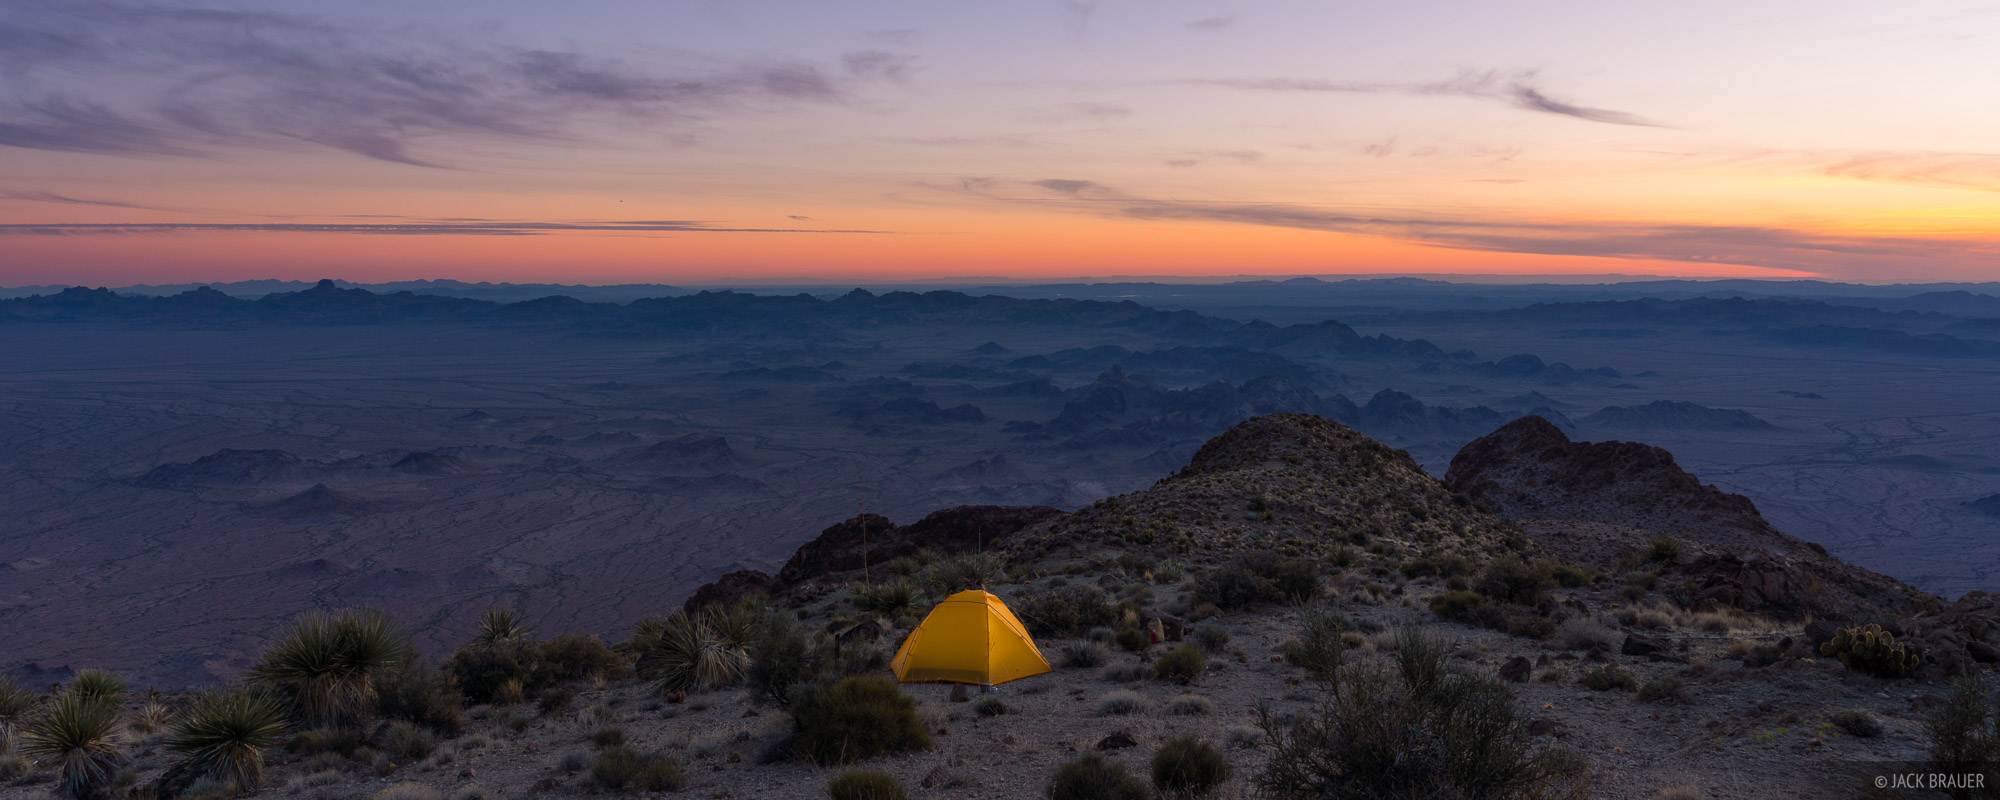 Arizona, Castle Dome Mountains, Kofa National Wildlife Refuge, Signal Peak, tent, Kofa Mountains